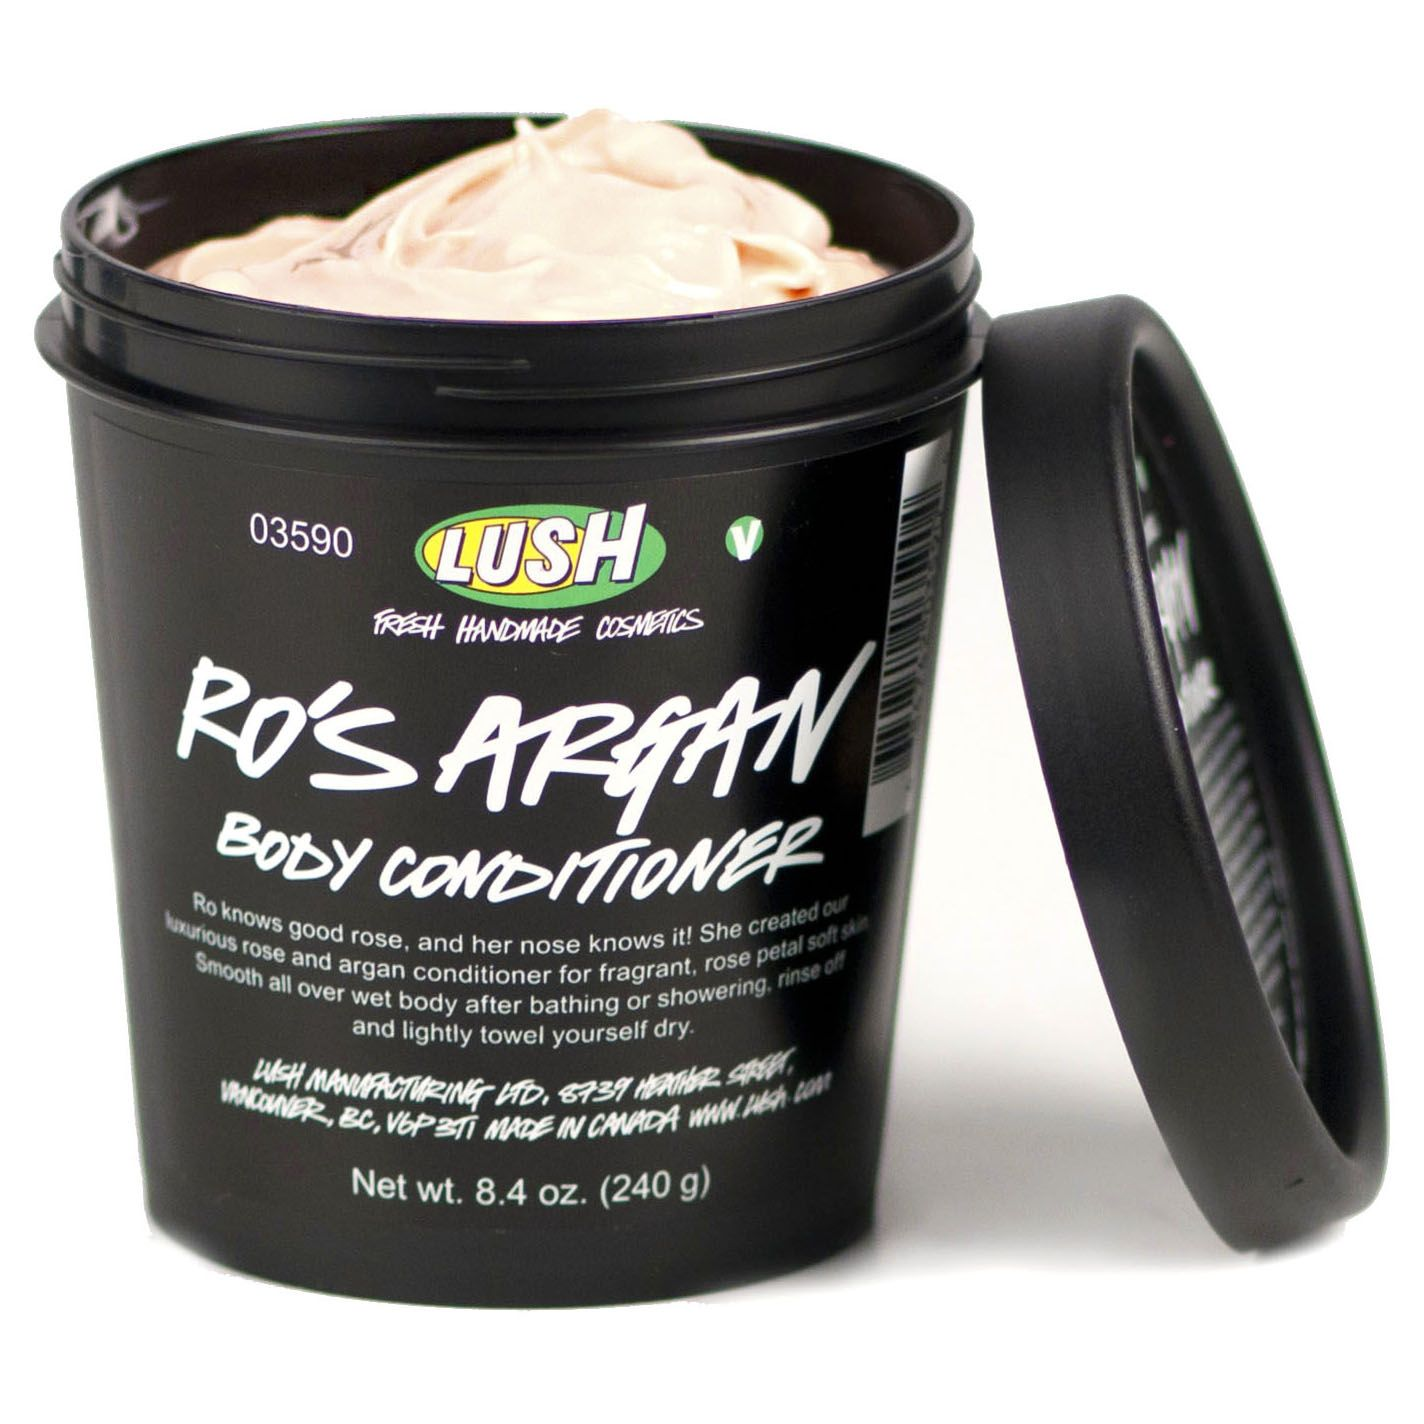 Lush- Ro's Argan Body Conditioner (luxurious rose-scented shower lotion for the softest skin that ever was), $32.95